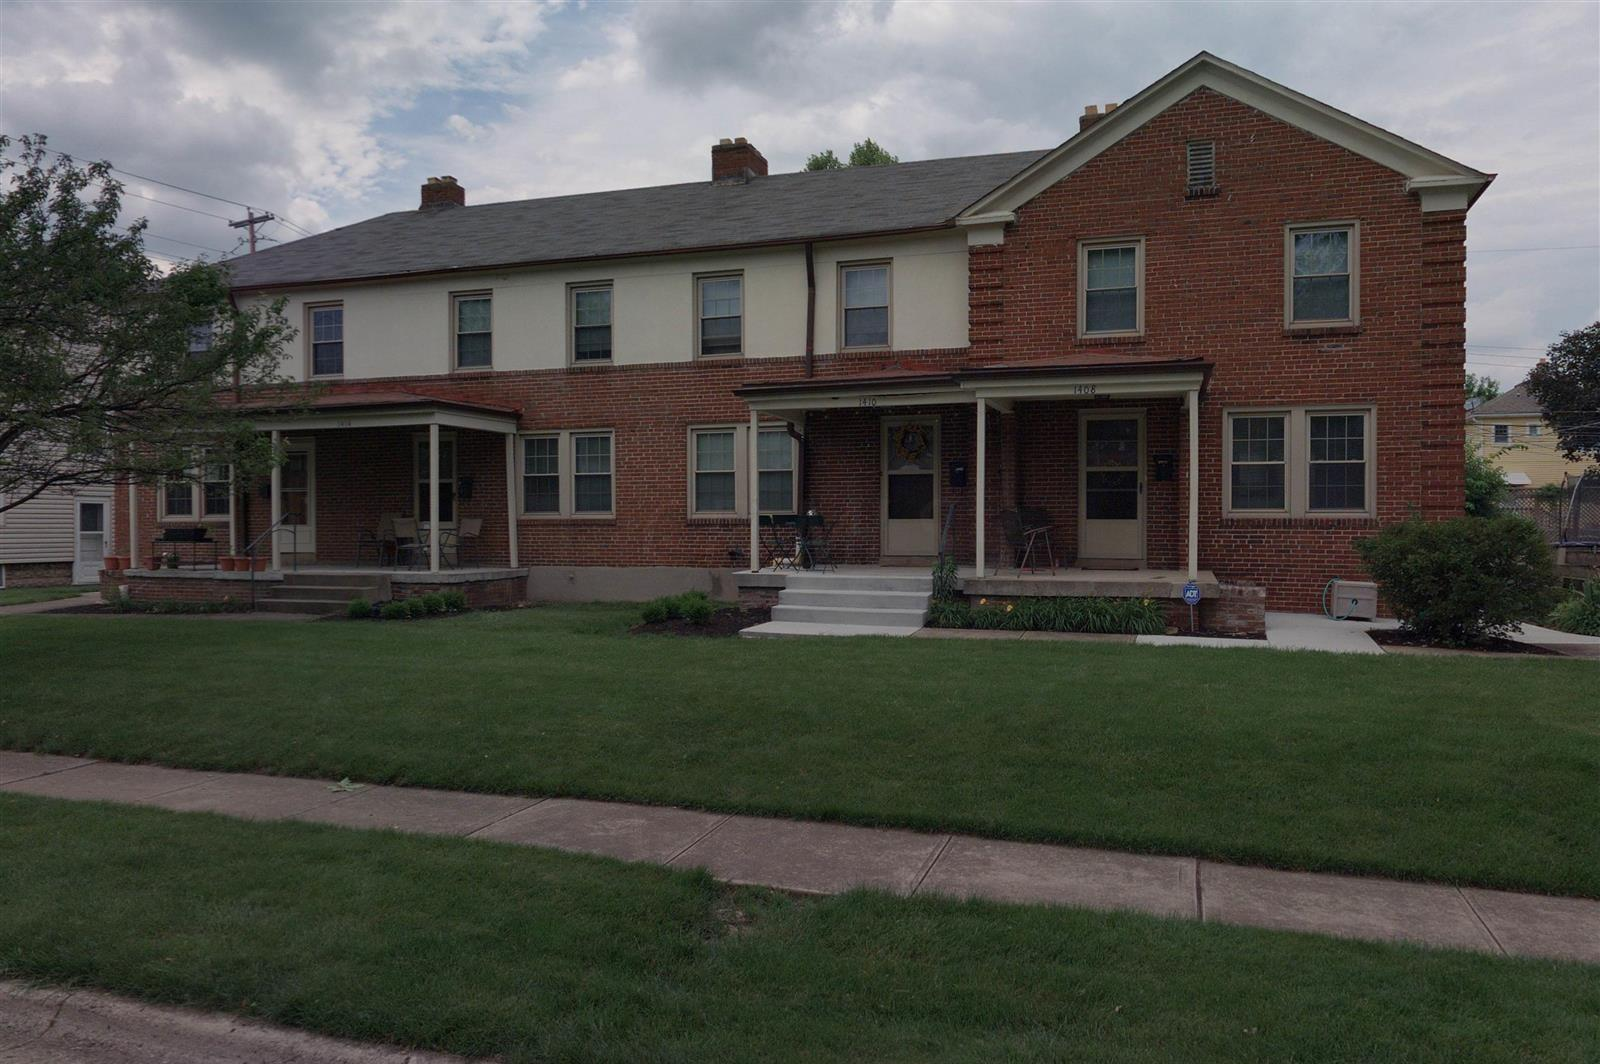 Property for sale at 1408 Haines Avenue, Grandview Heights,  Ohio 43212